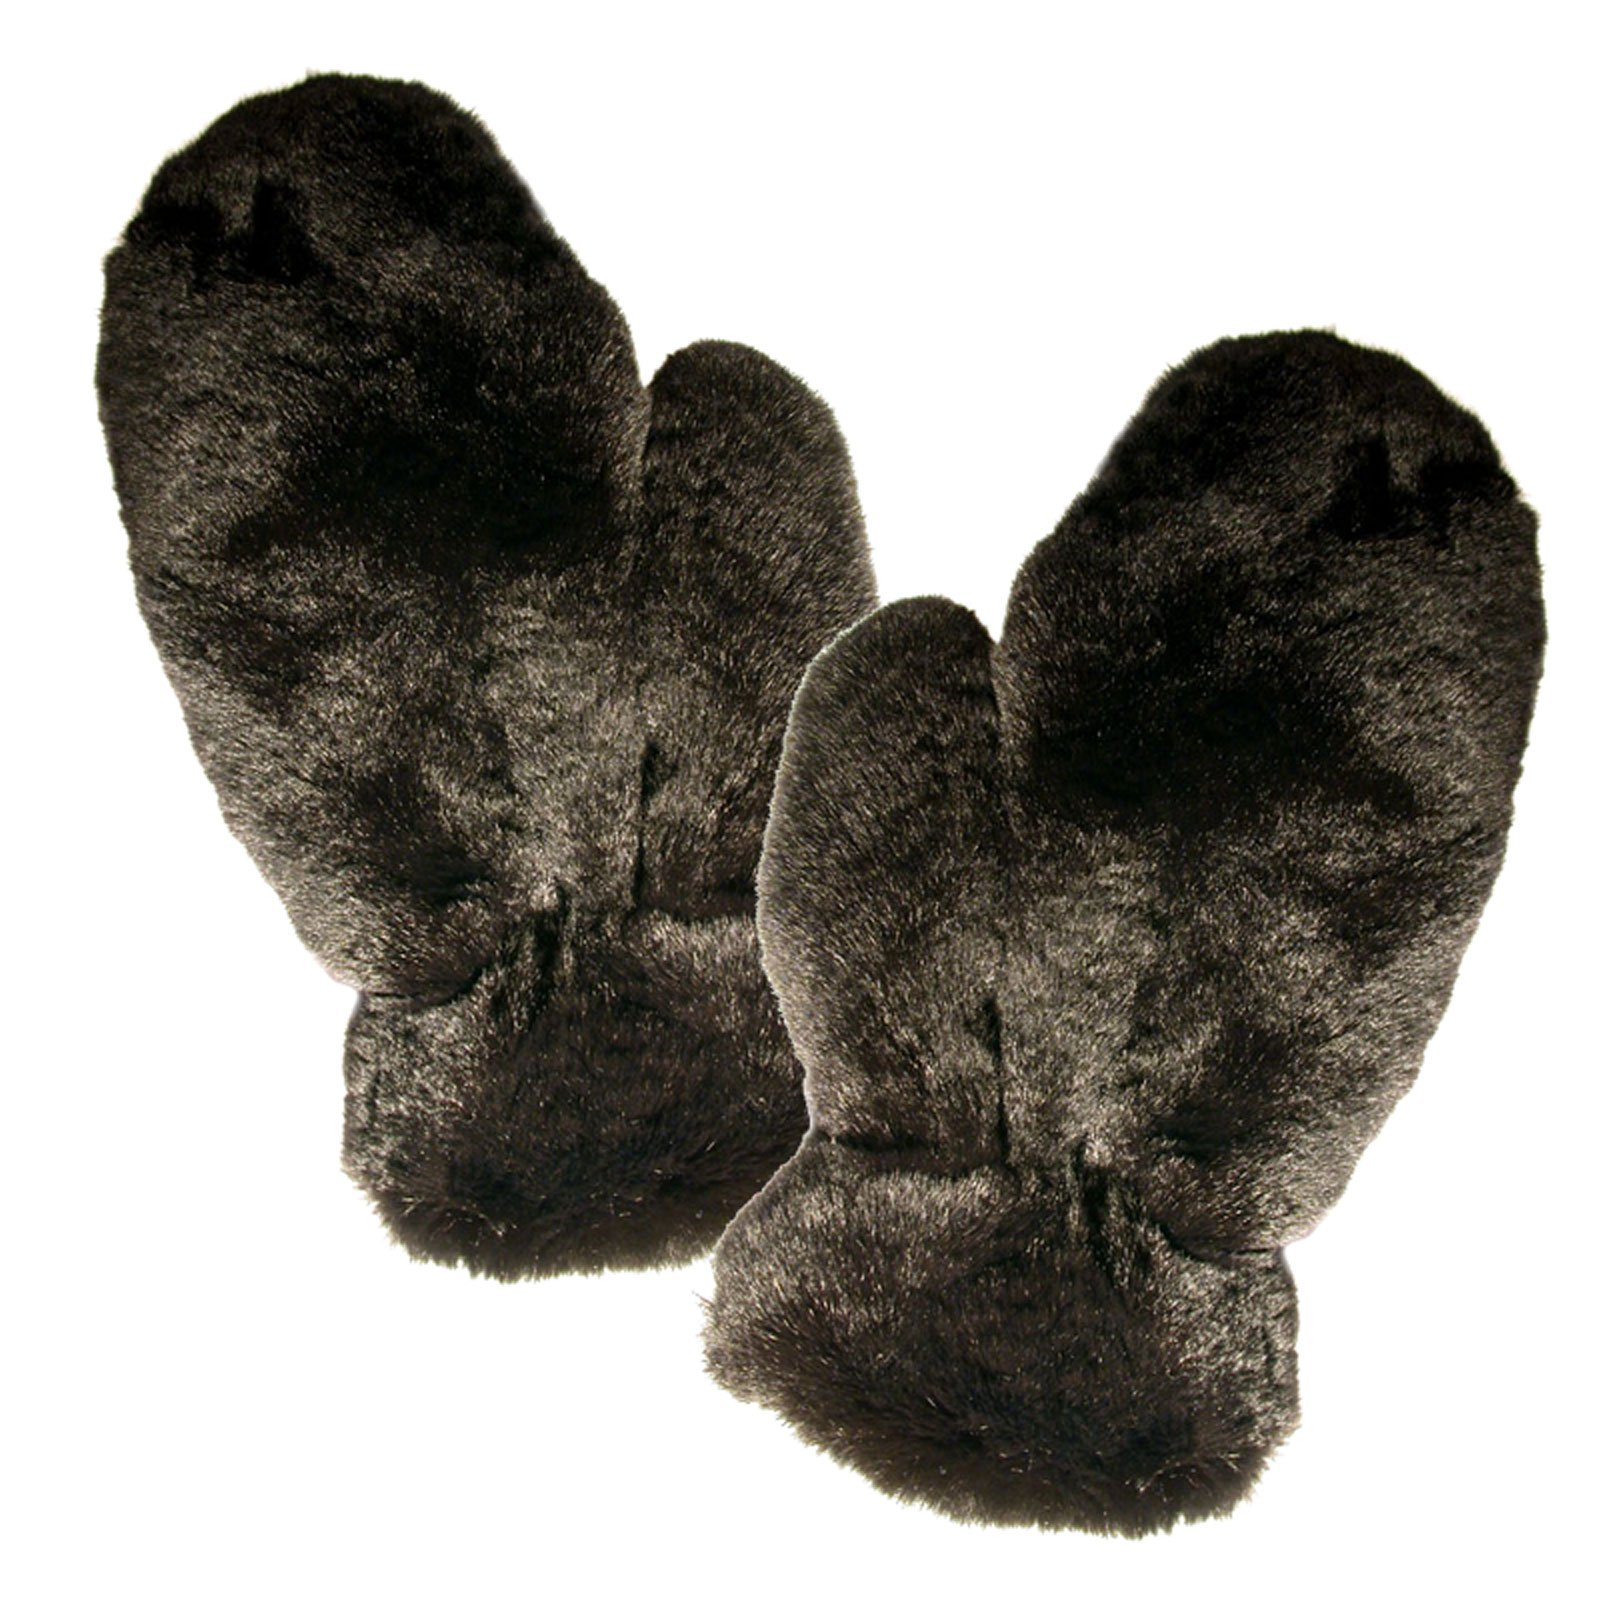 MinkgLove Full Fur Massage Glove, Rex Rabbit, Covered Inside and Outside, Velvety Soft Plush Feel, Black, Hand Tailored, Unisex, One Size - Four Sided All Fur by MinkgLove